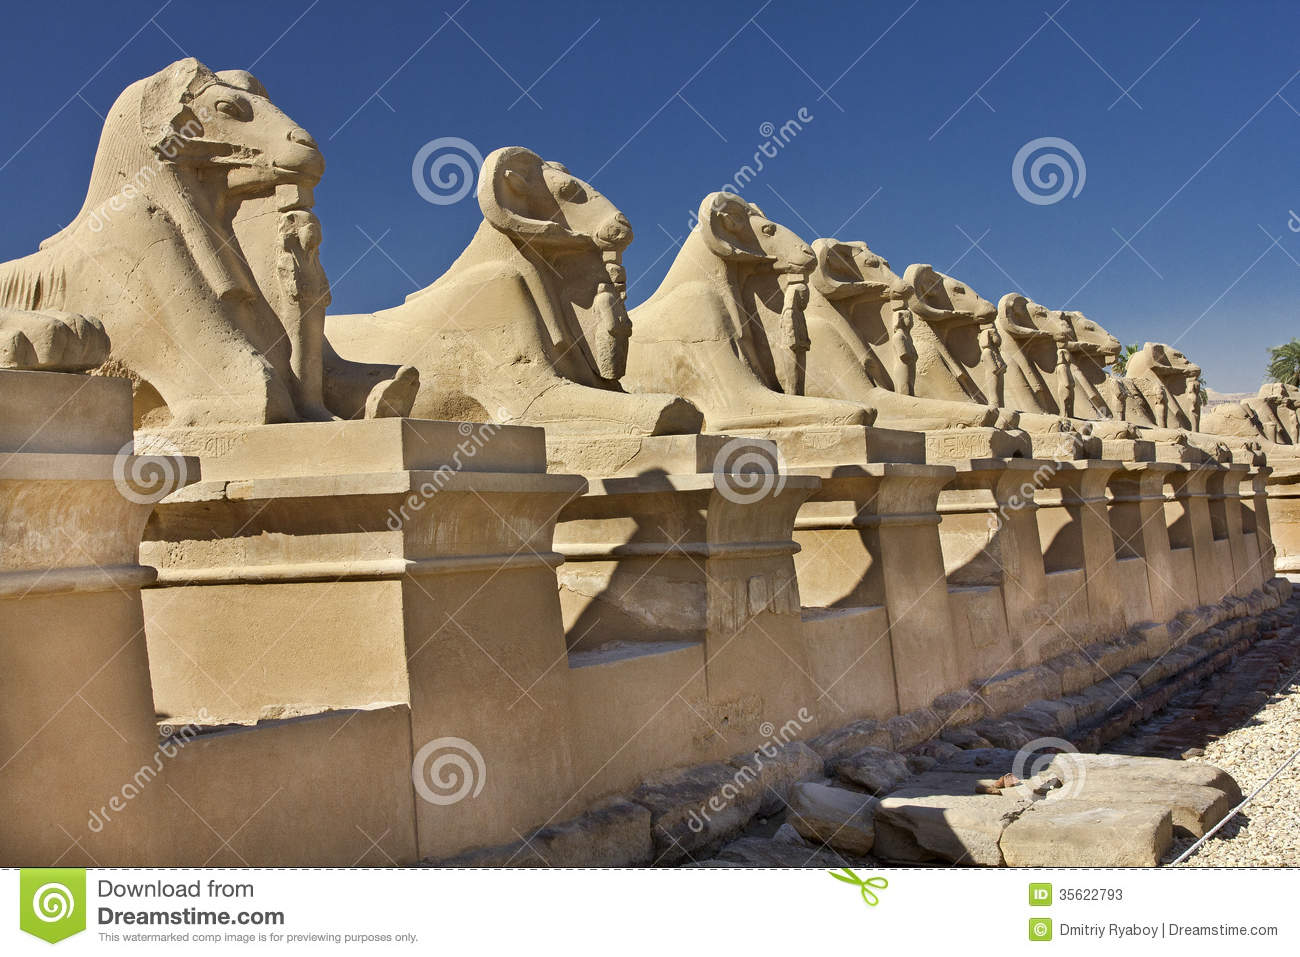 Avenue Of Sphinxes With The Body Of A Lion And The Head Of ...: http://www.dreamstime.com/stock-photos-avenue-sphinxes-body-lion-head-sheep-baran-baran-sacred-animal-god-amun-alley-was-created-image35622793